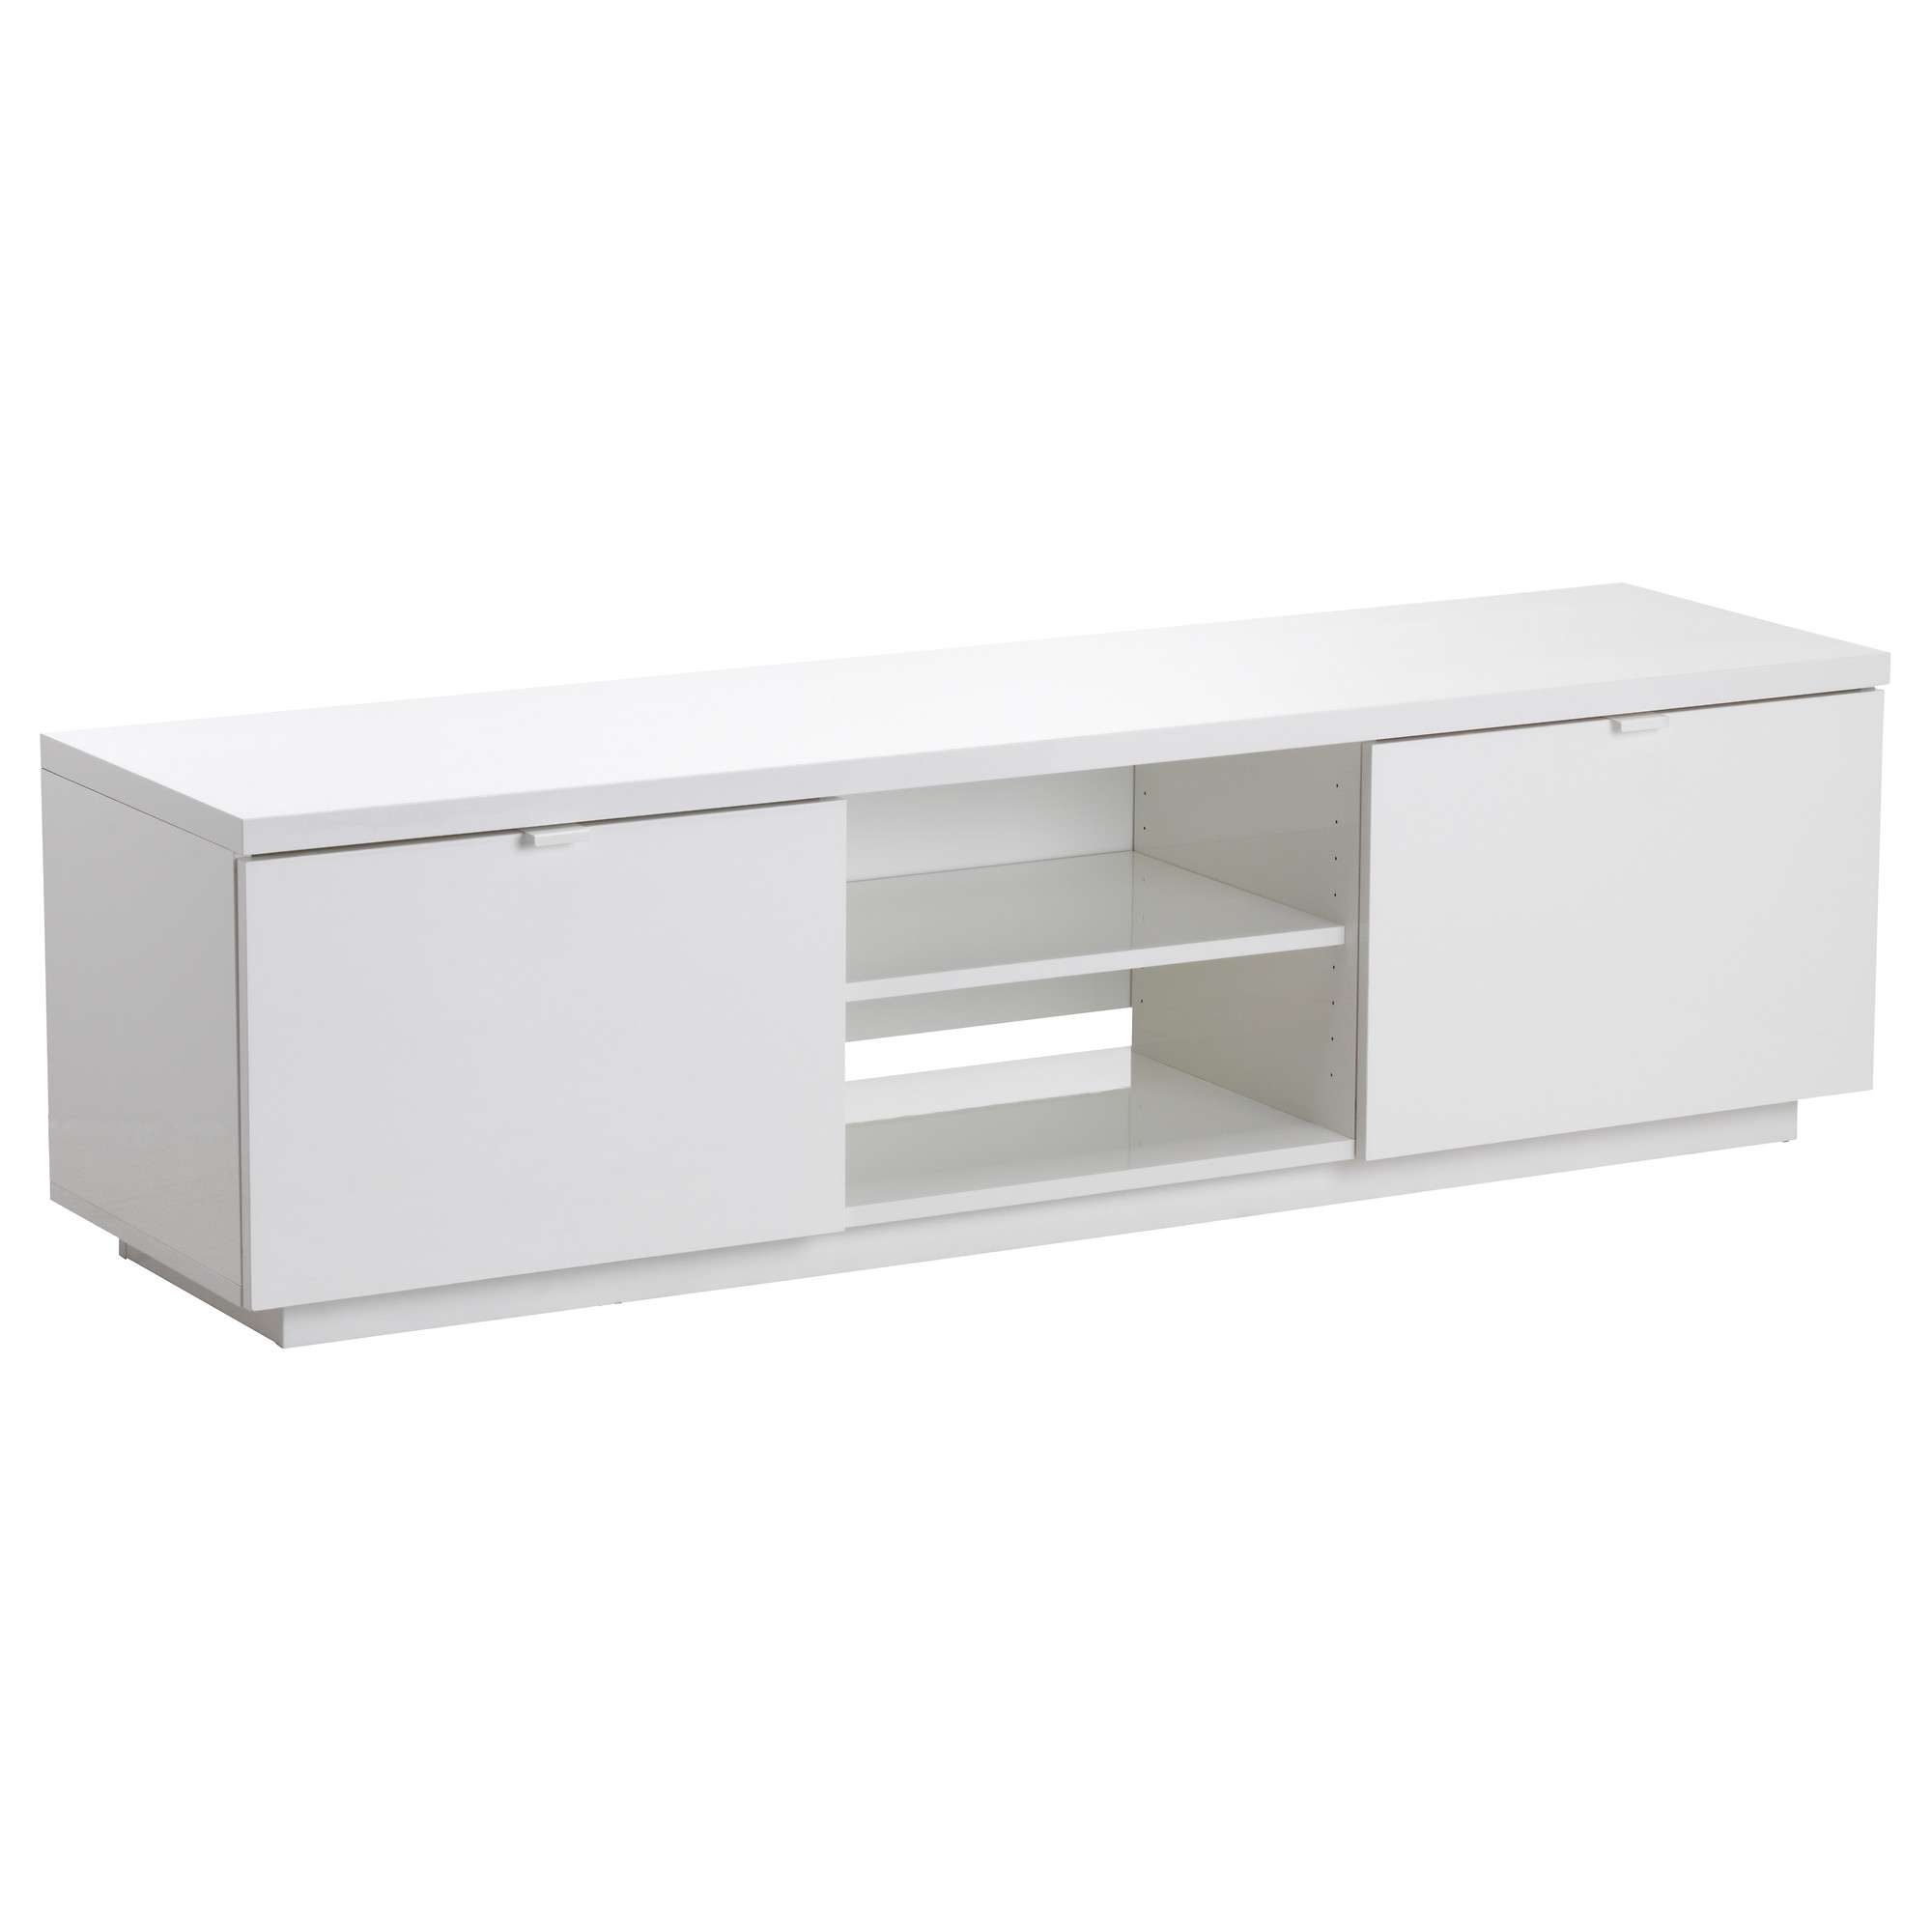 Byås Tv Bench High Gloss White 160x42x45 Cm – Ikea For Gloss White Tv Stands (View 8 of 15)